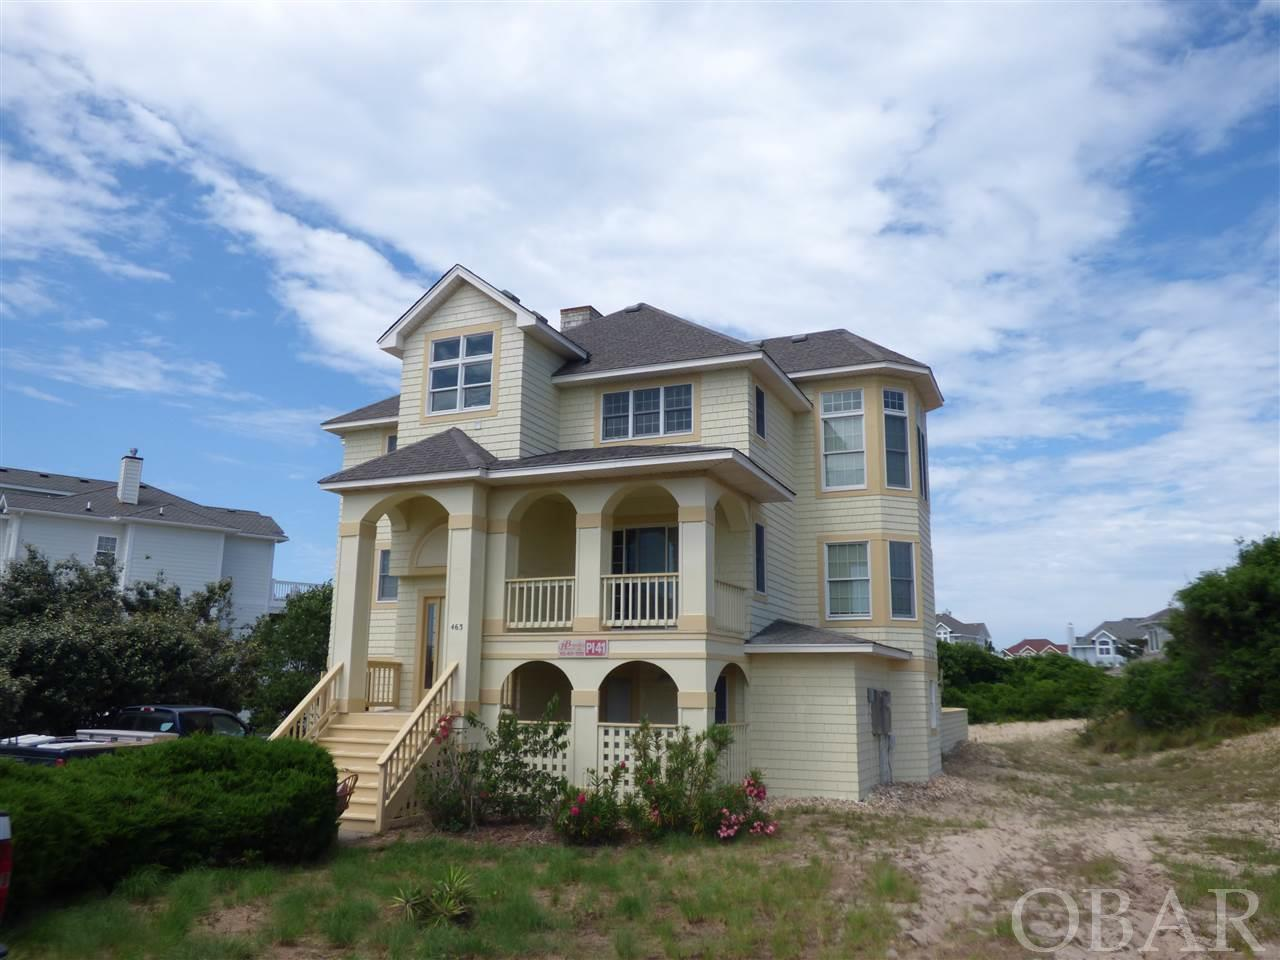 463 North Cove Road Lot 41, Corolla, NC 27927